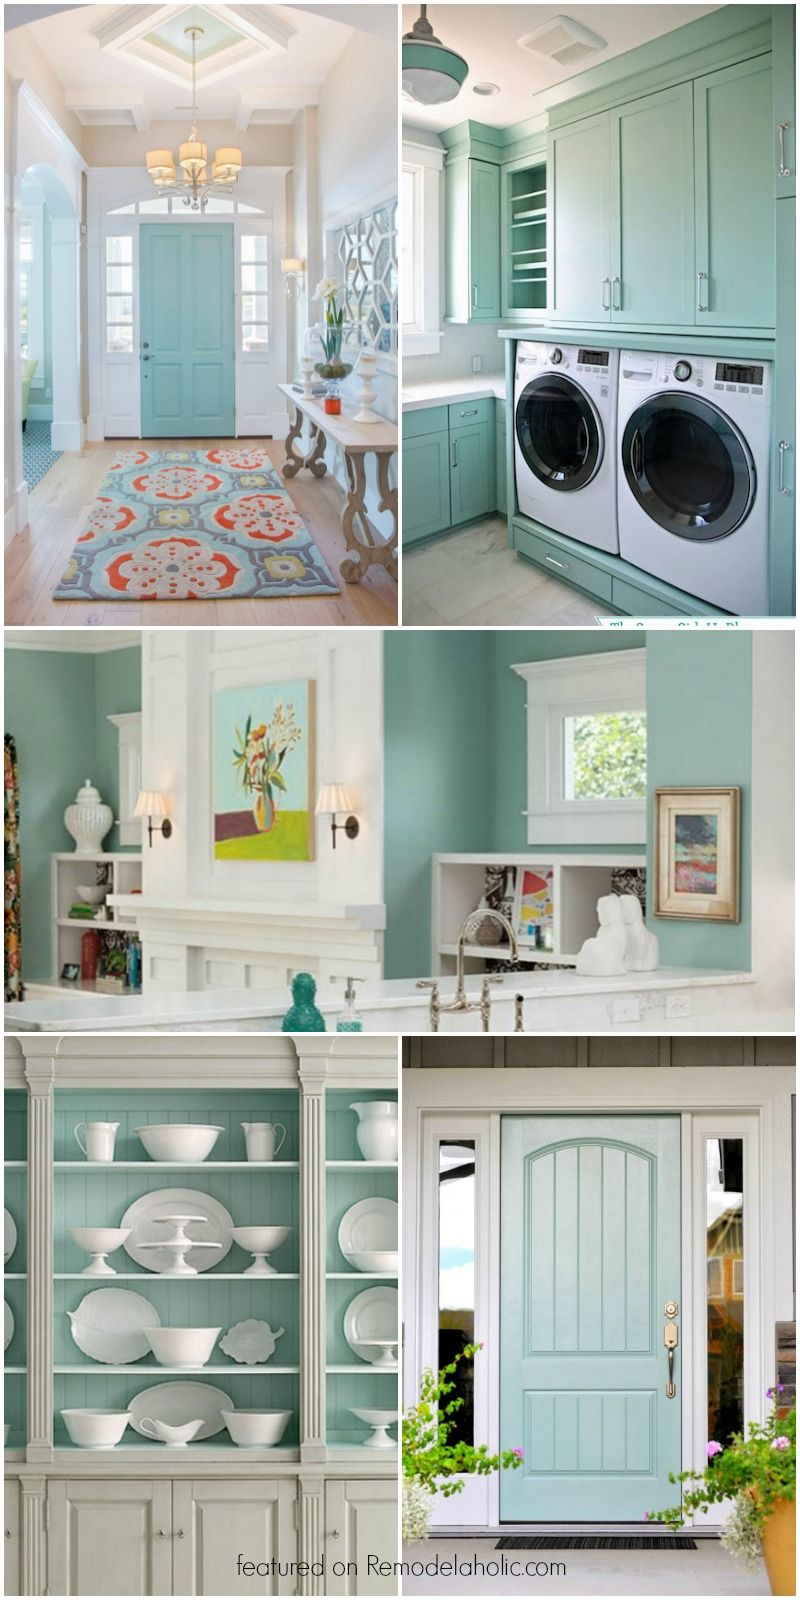 This Beautiful Light Blue Gray Paint Color Is So Versatile! Interiors And  Exteriors, For Cabinets, Walls, And More!